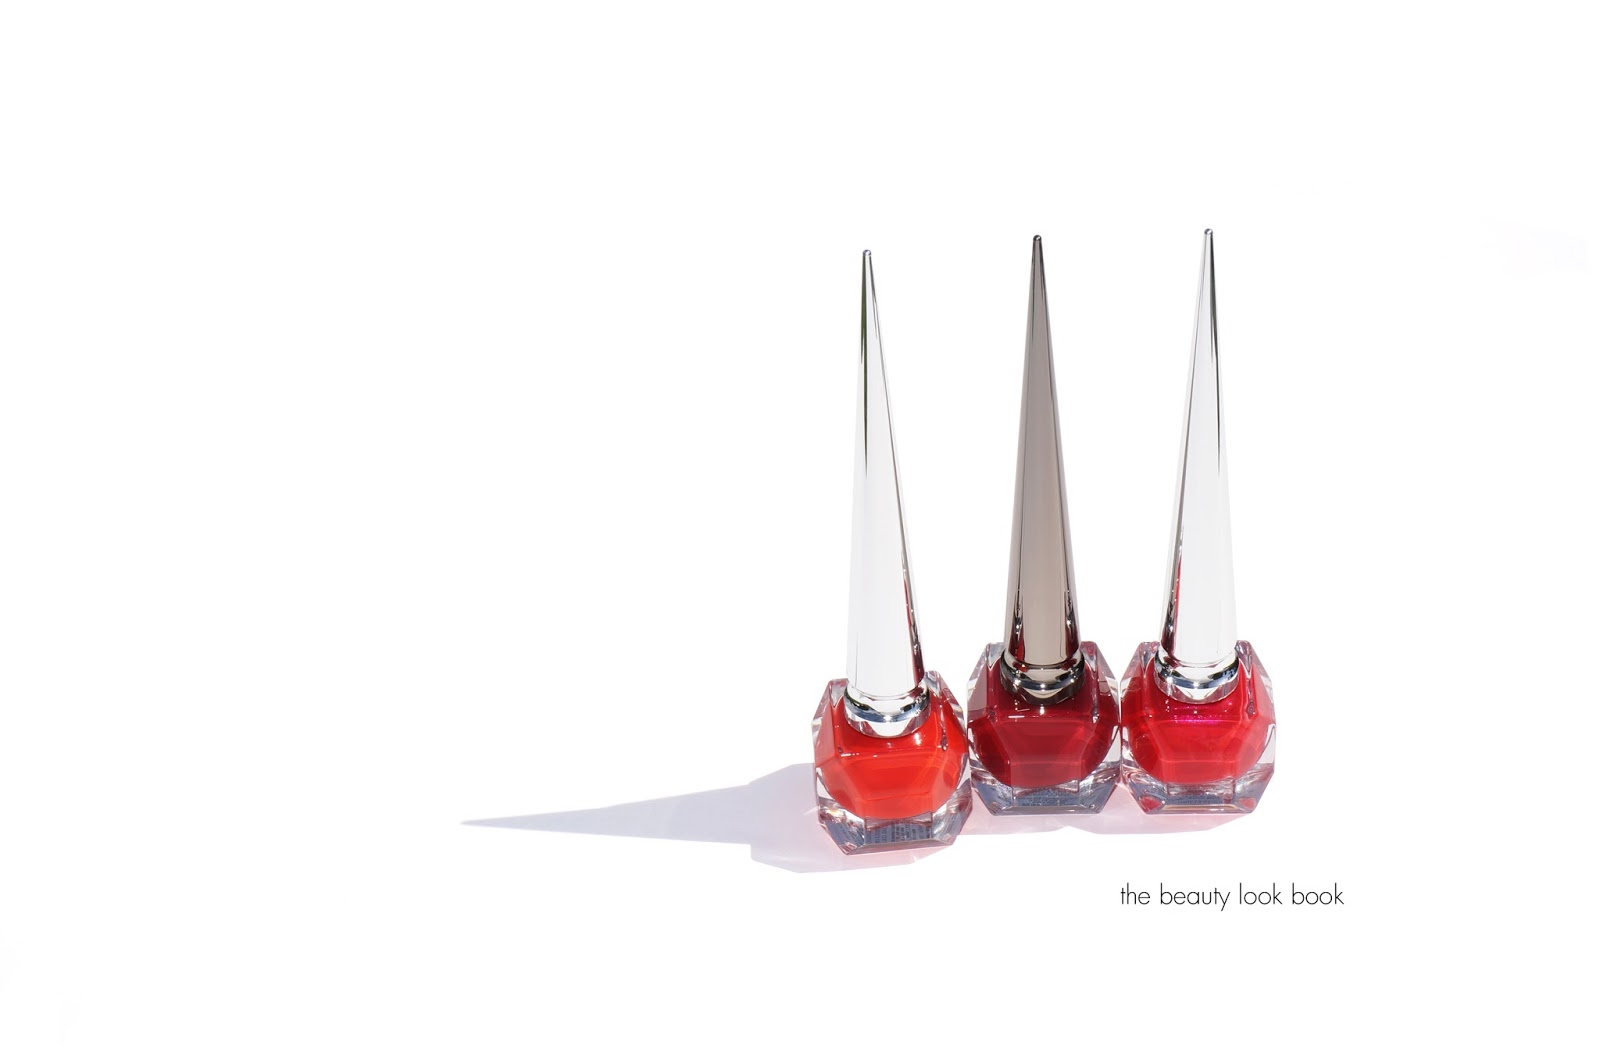 Christian Louboutin Red Nail Extensions | The Beauty Look Book